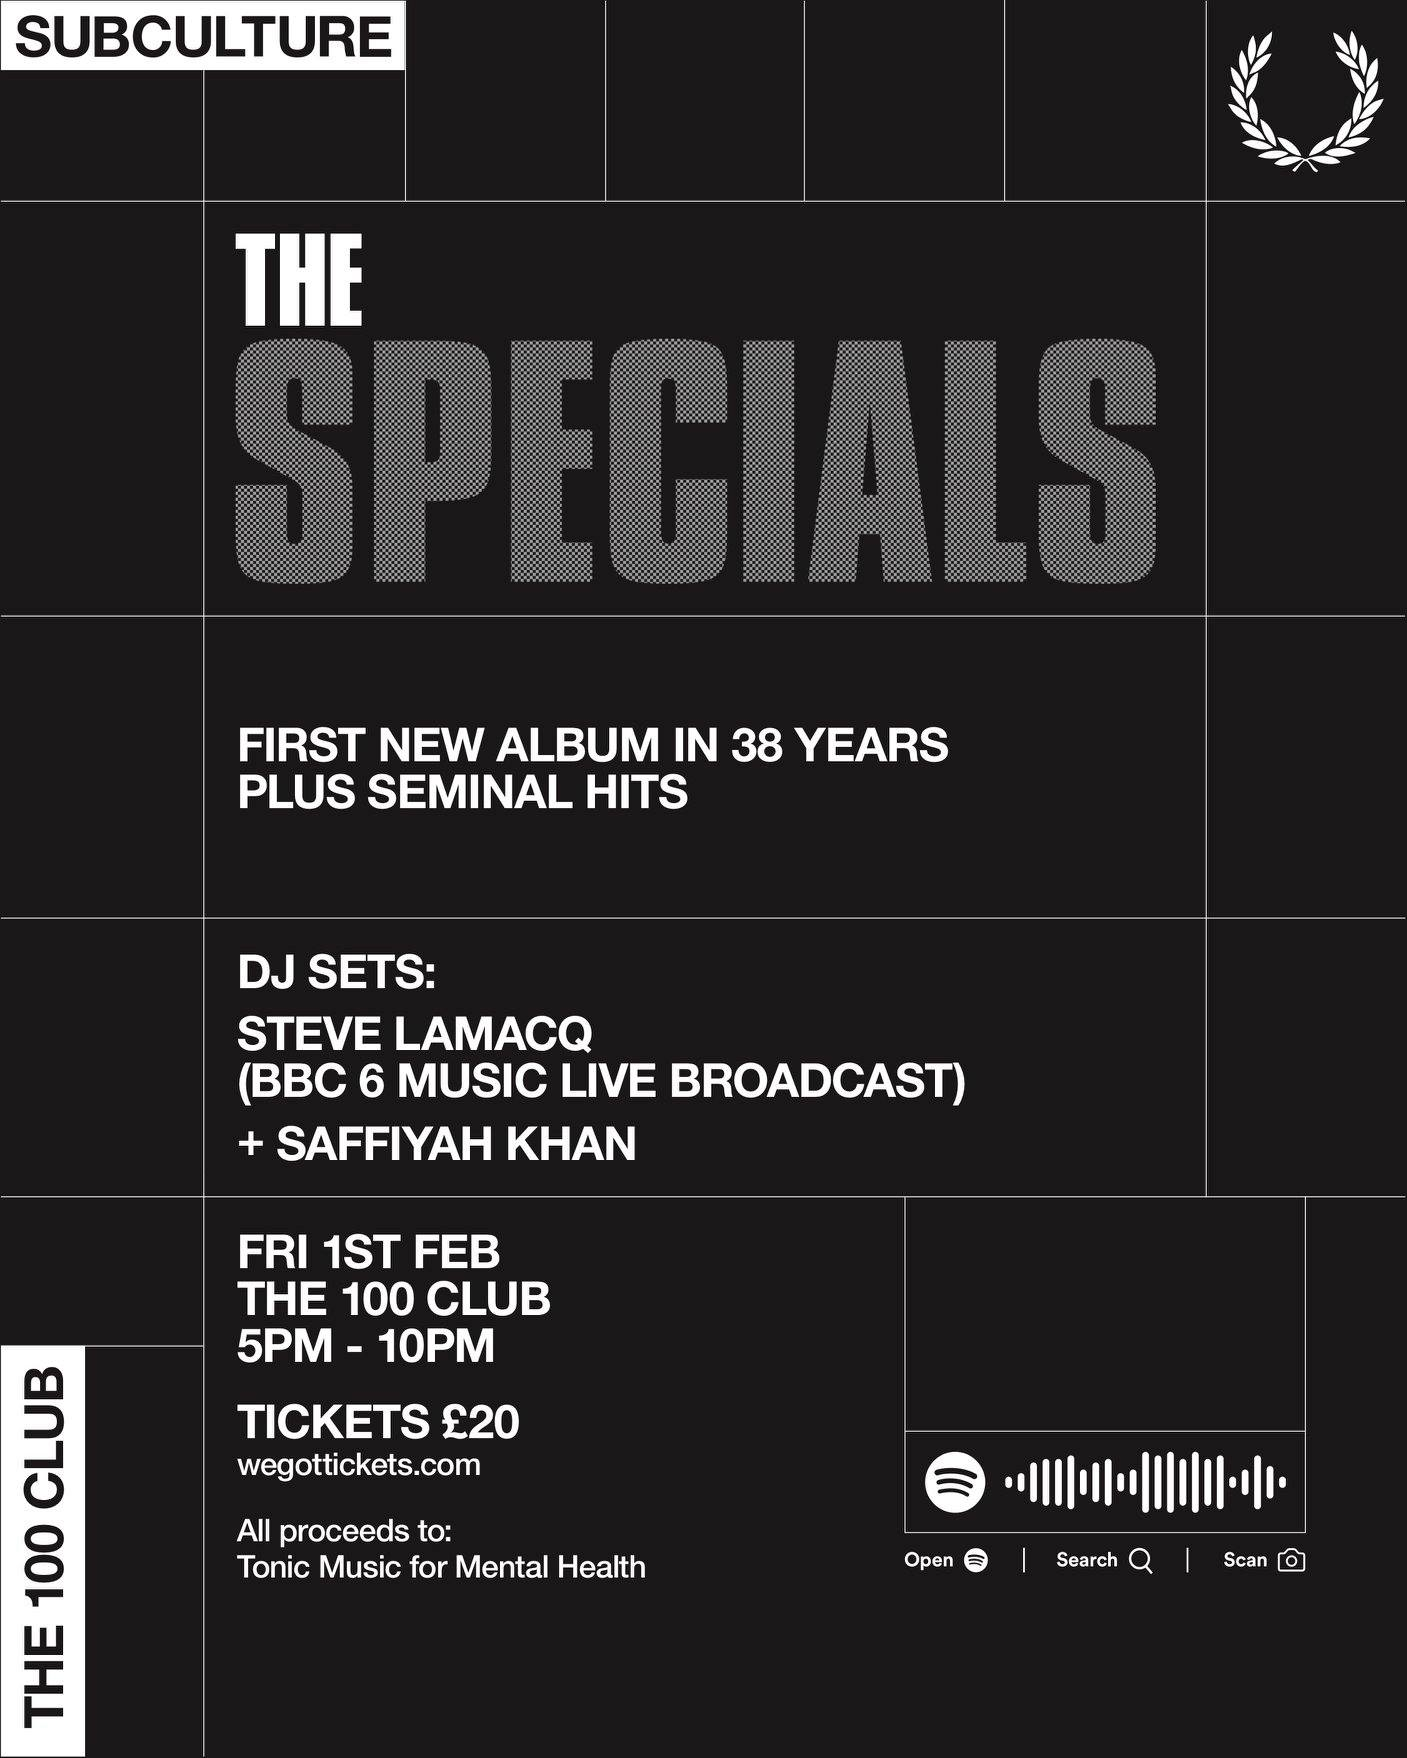 specials gig at 100 club for Tonic music